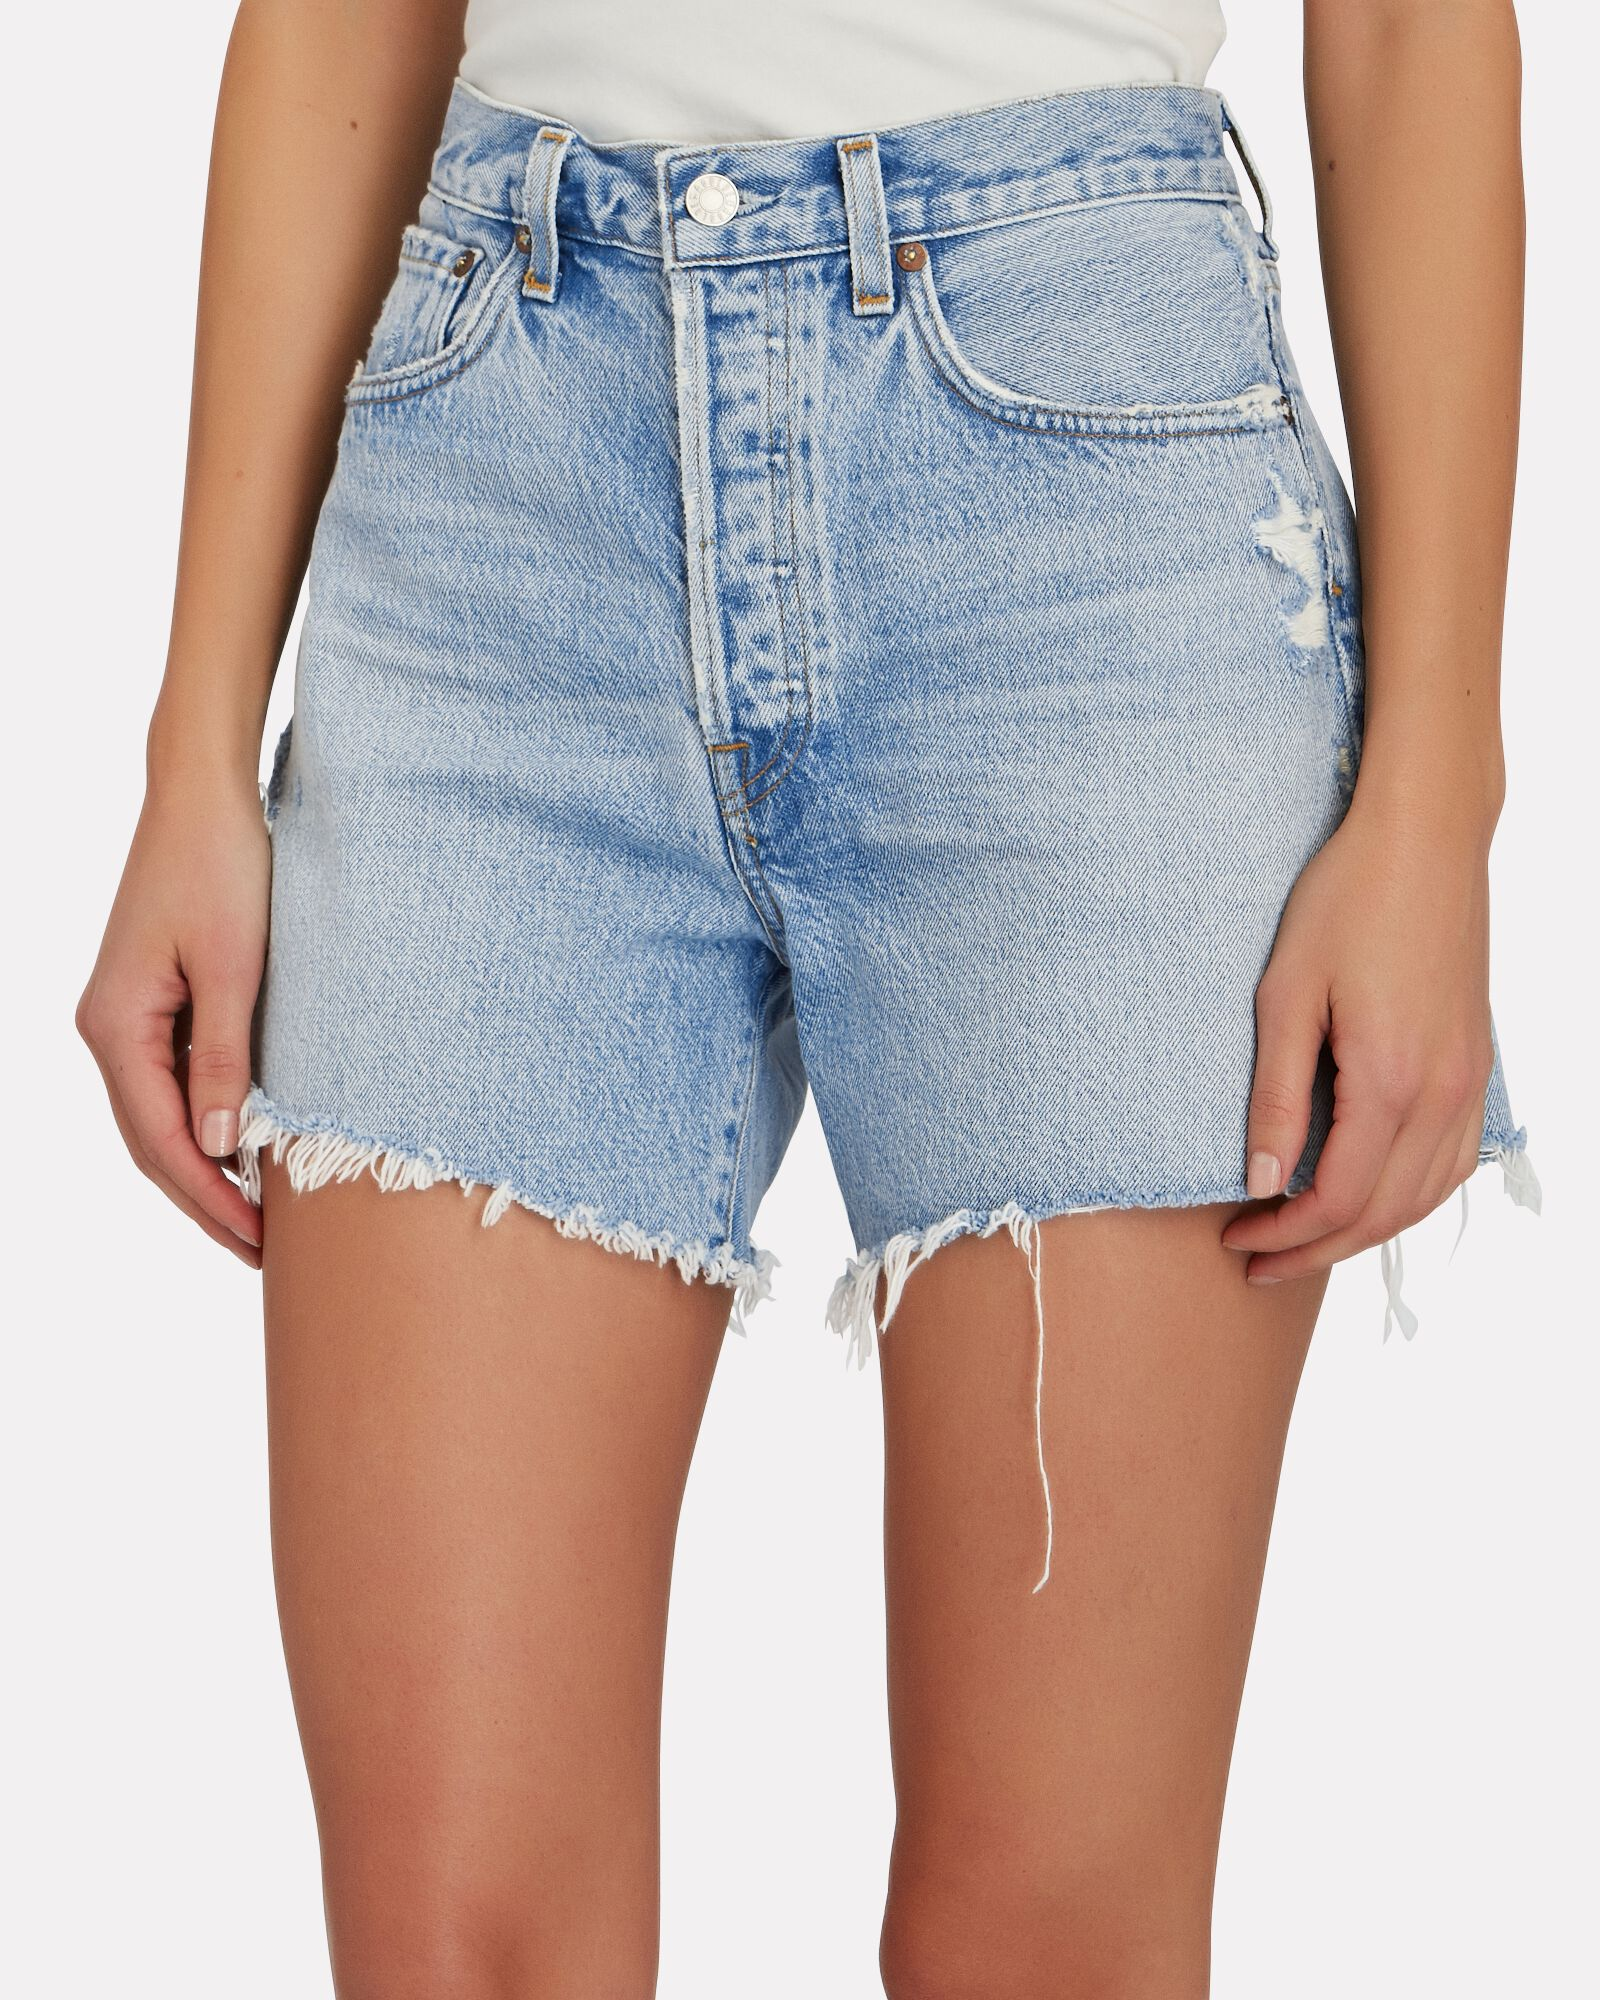 Parker Long Denim Shorts, PARADE, hi-res